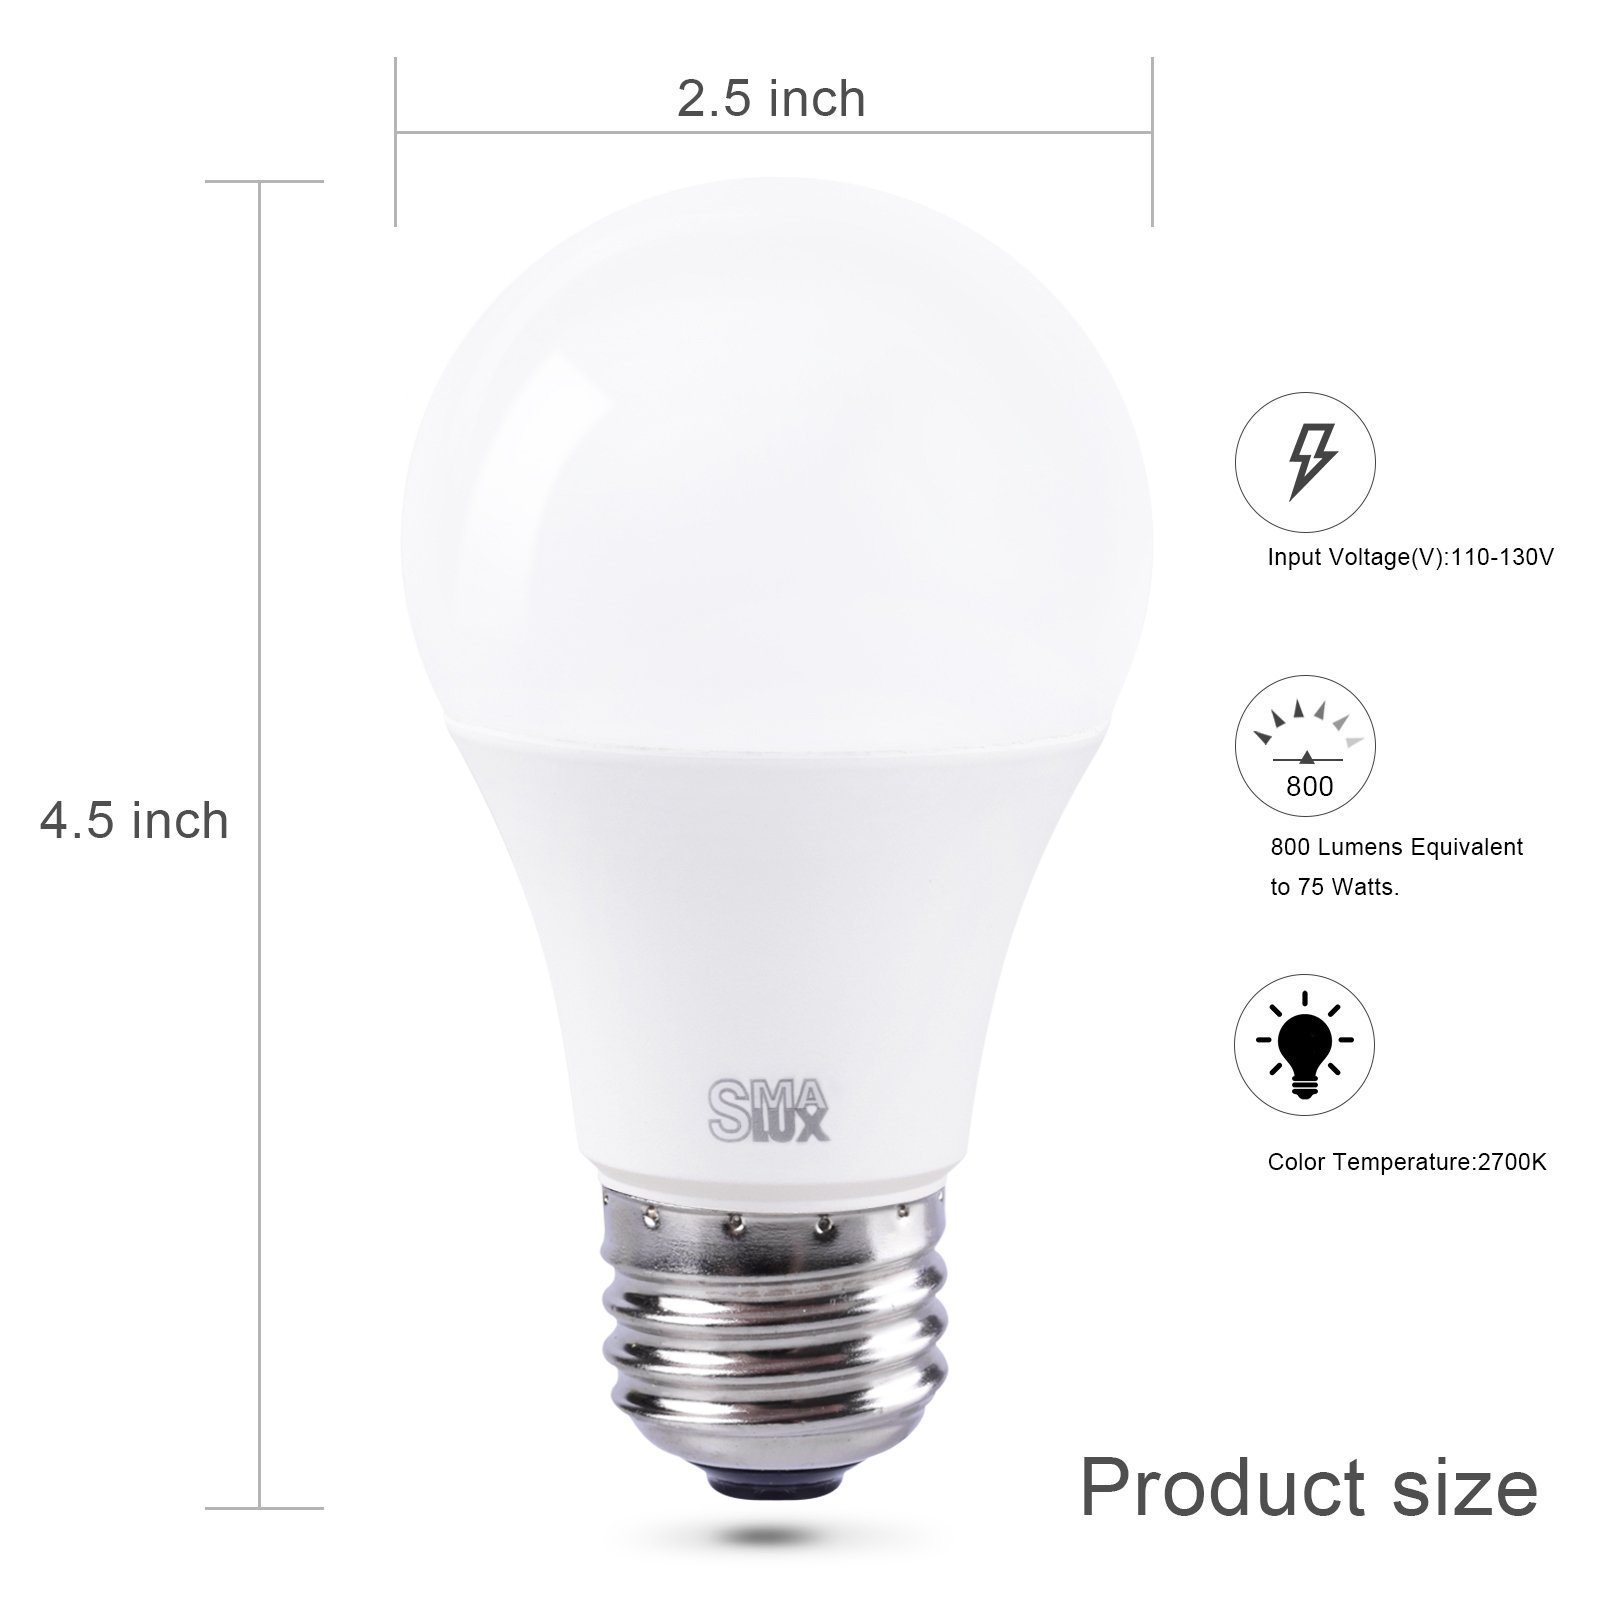 Smart LED Light Bulb, Smalux A19 E26 WiFi Warm White and RGB Color Tunable Dimmable Smart Home Bulb, 800 Lumens 75W Equivalent LED Bulb with Timer Function,Work with Alexa/Google Home/IFTTT